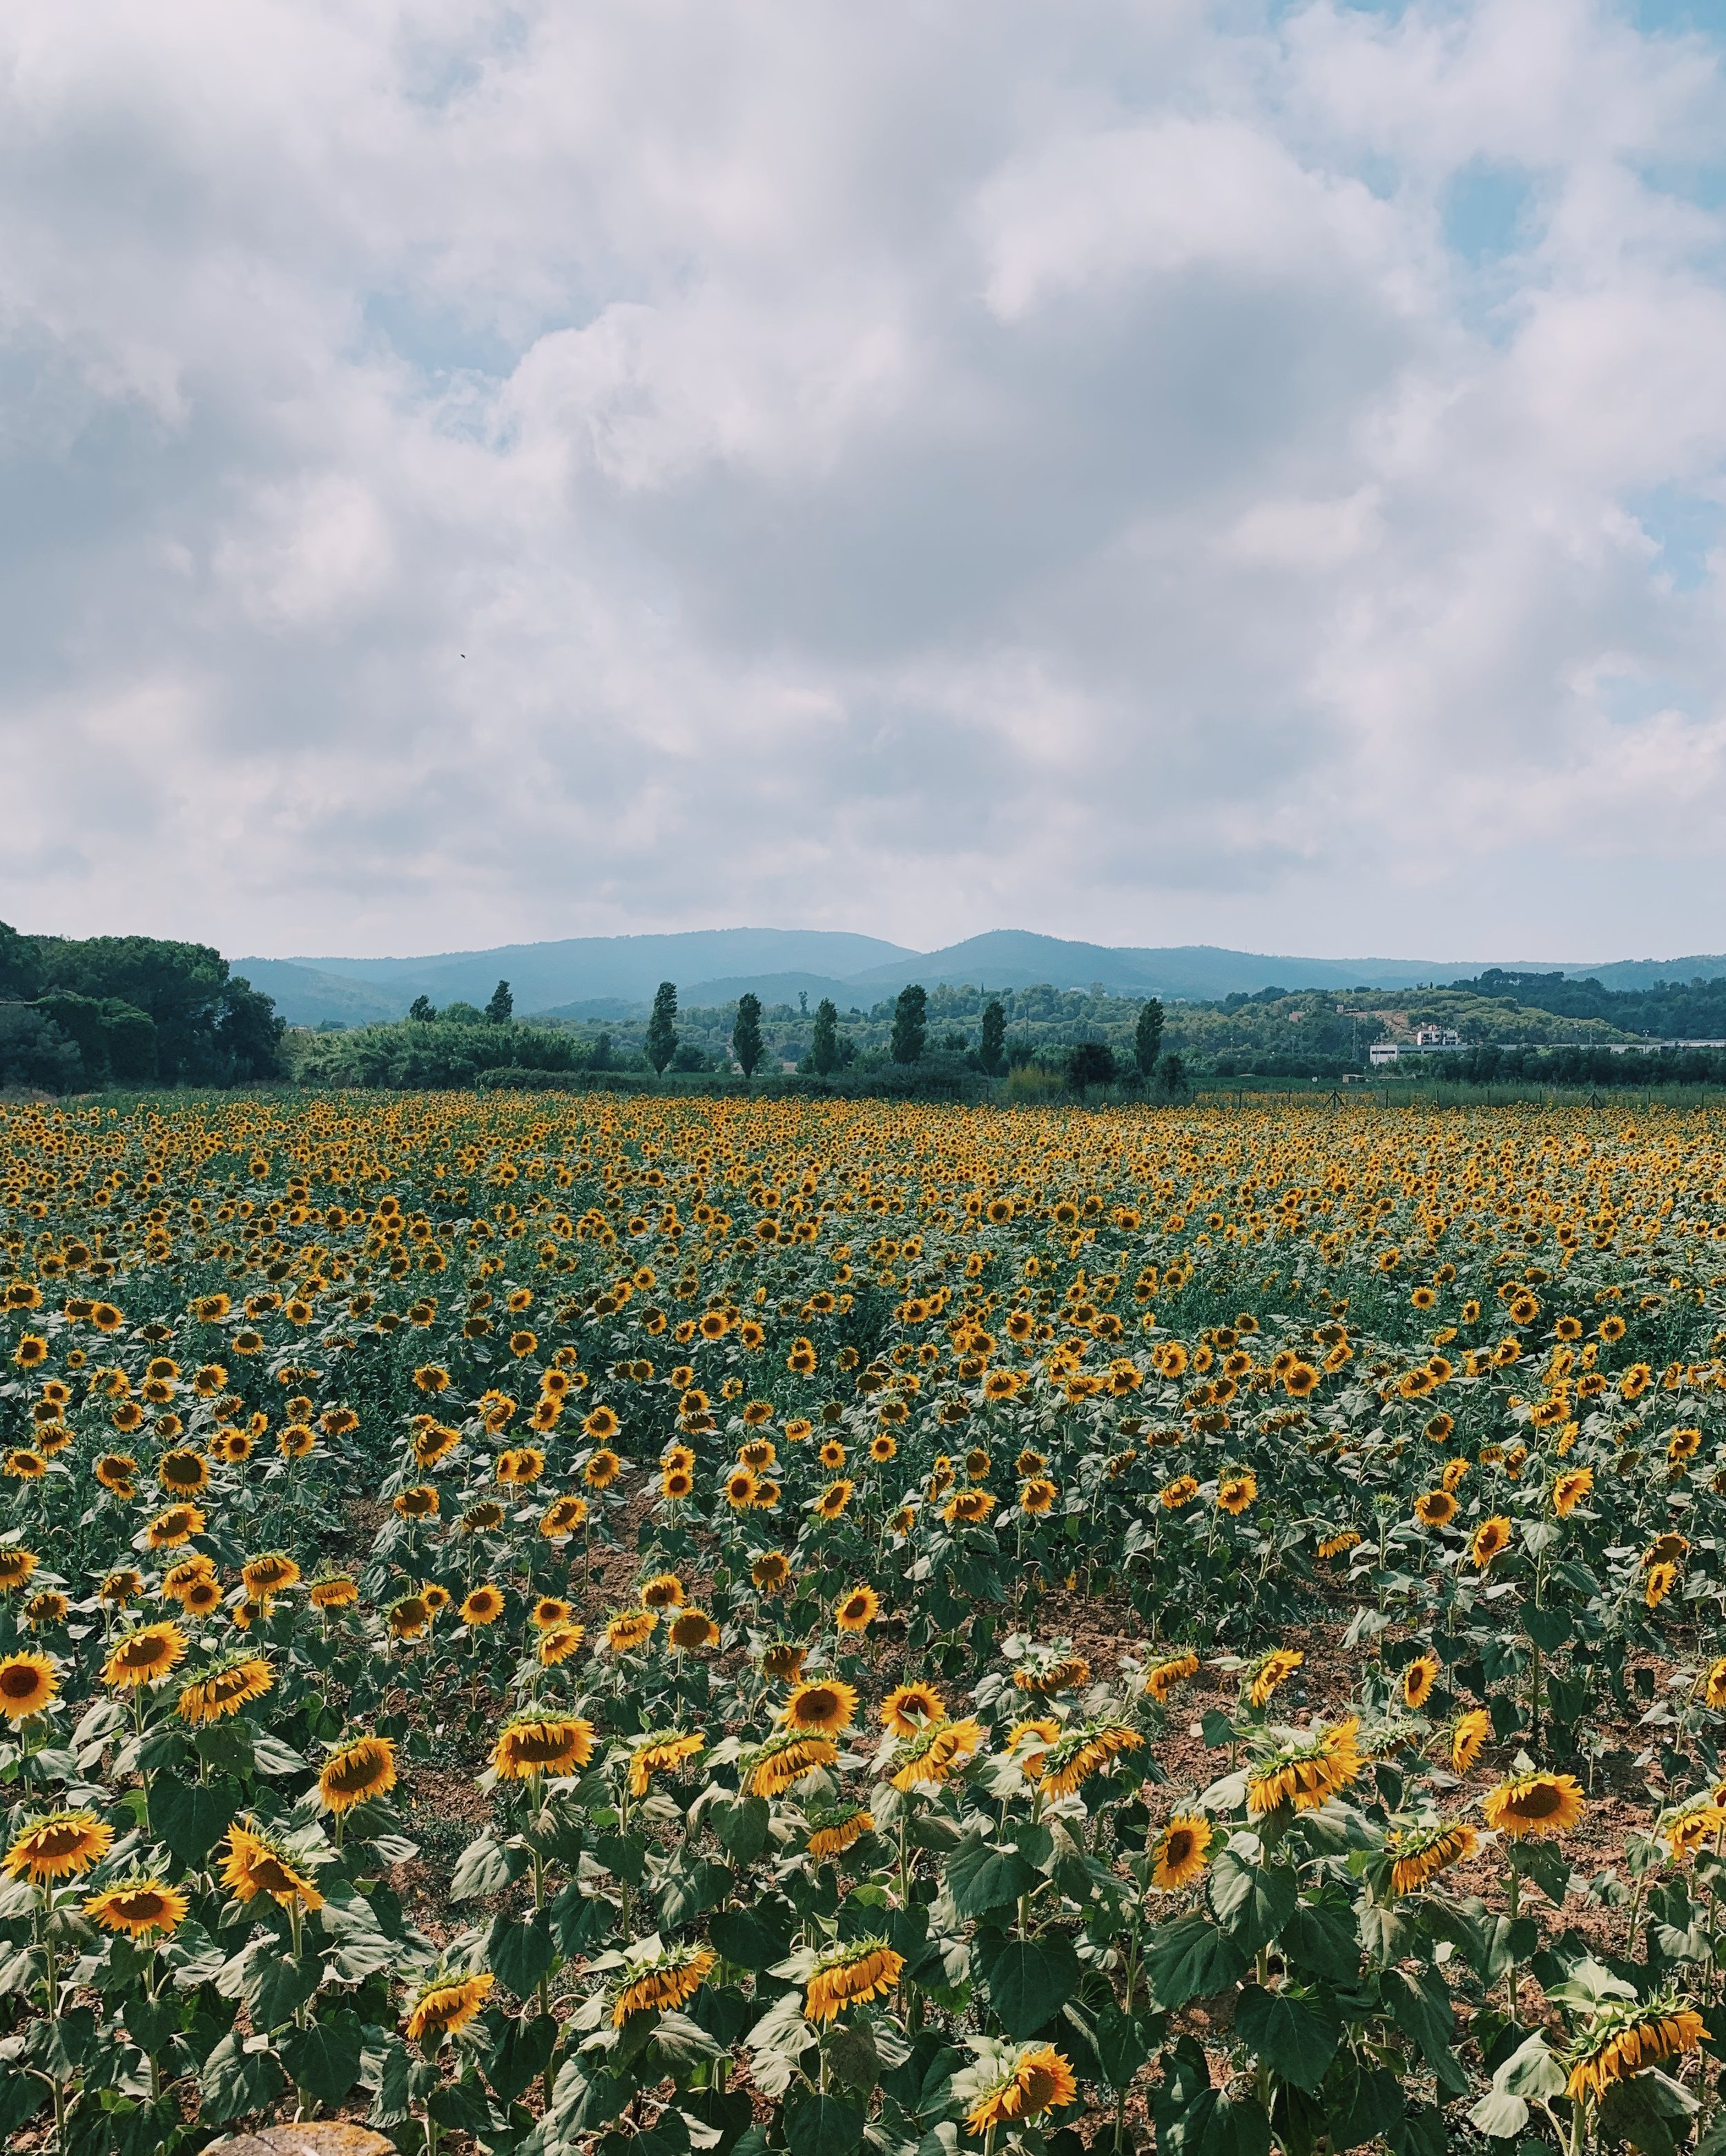 A sunflower field I passed on my to Llafranc from Tossa